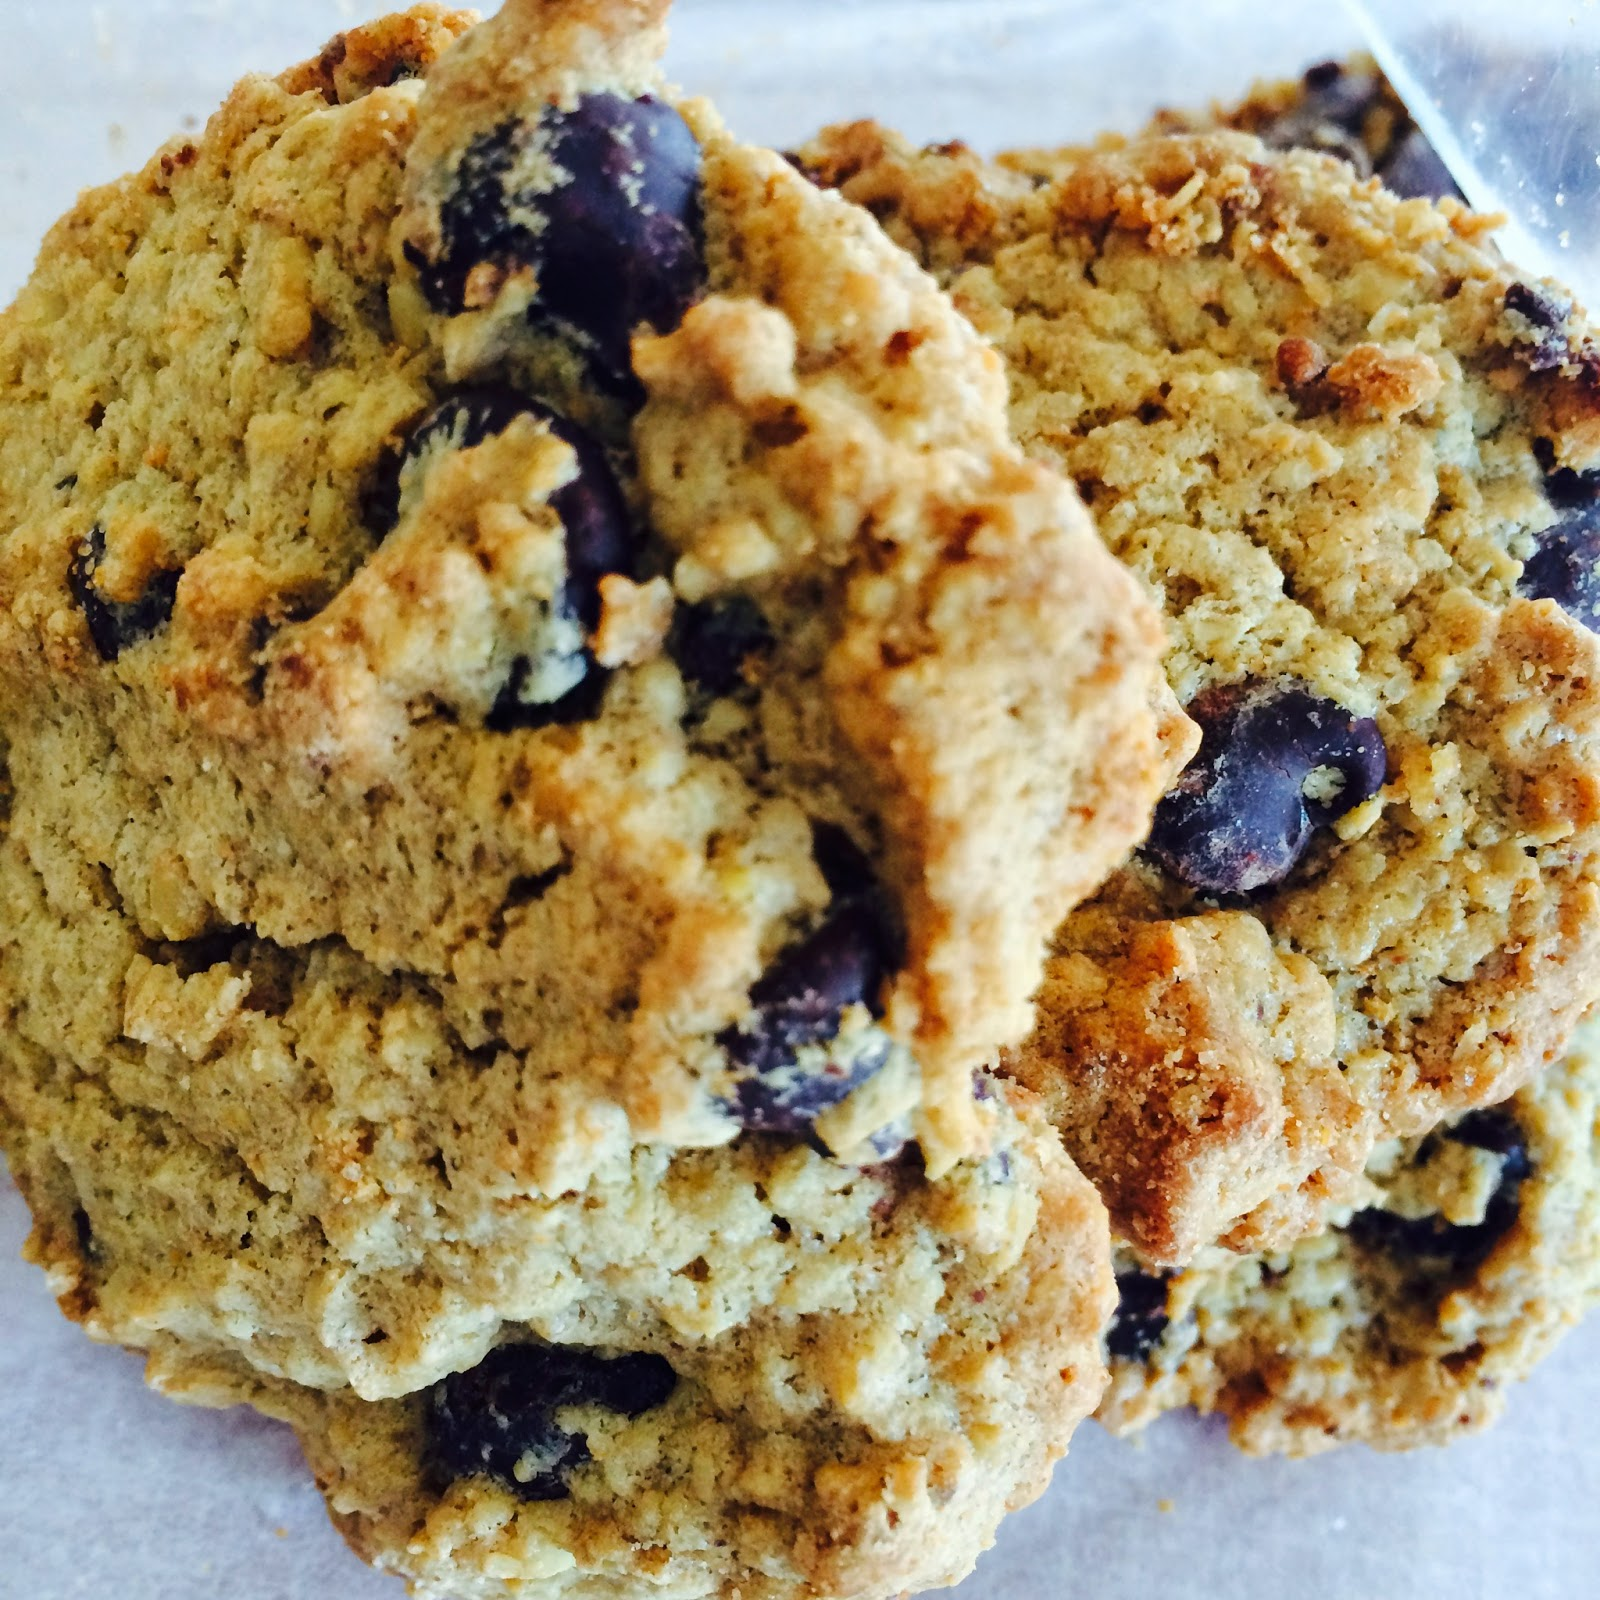 A wheat-free peanut butter oatmeal chocolate chip cookie.